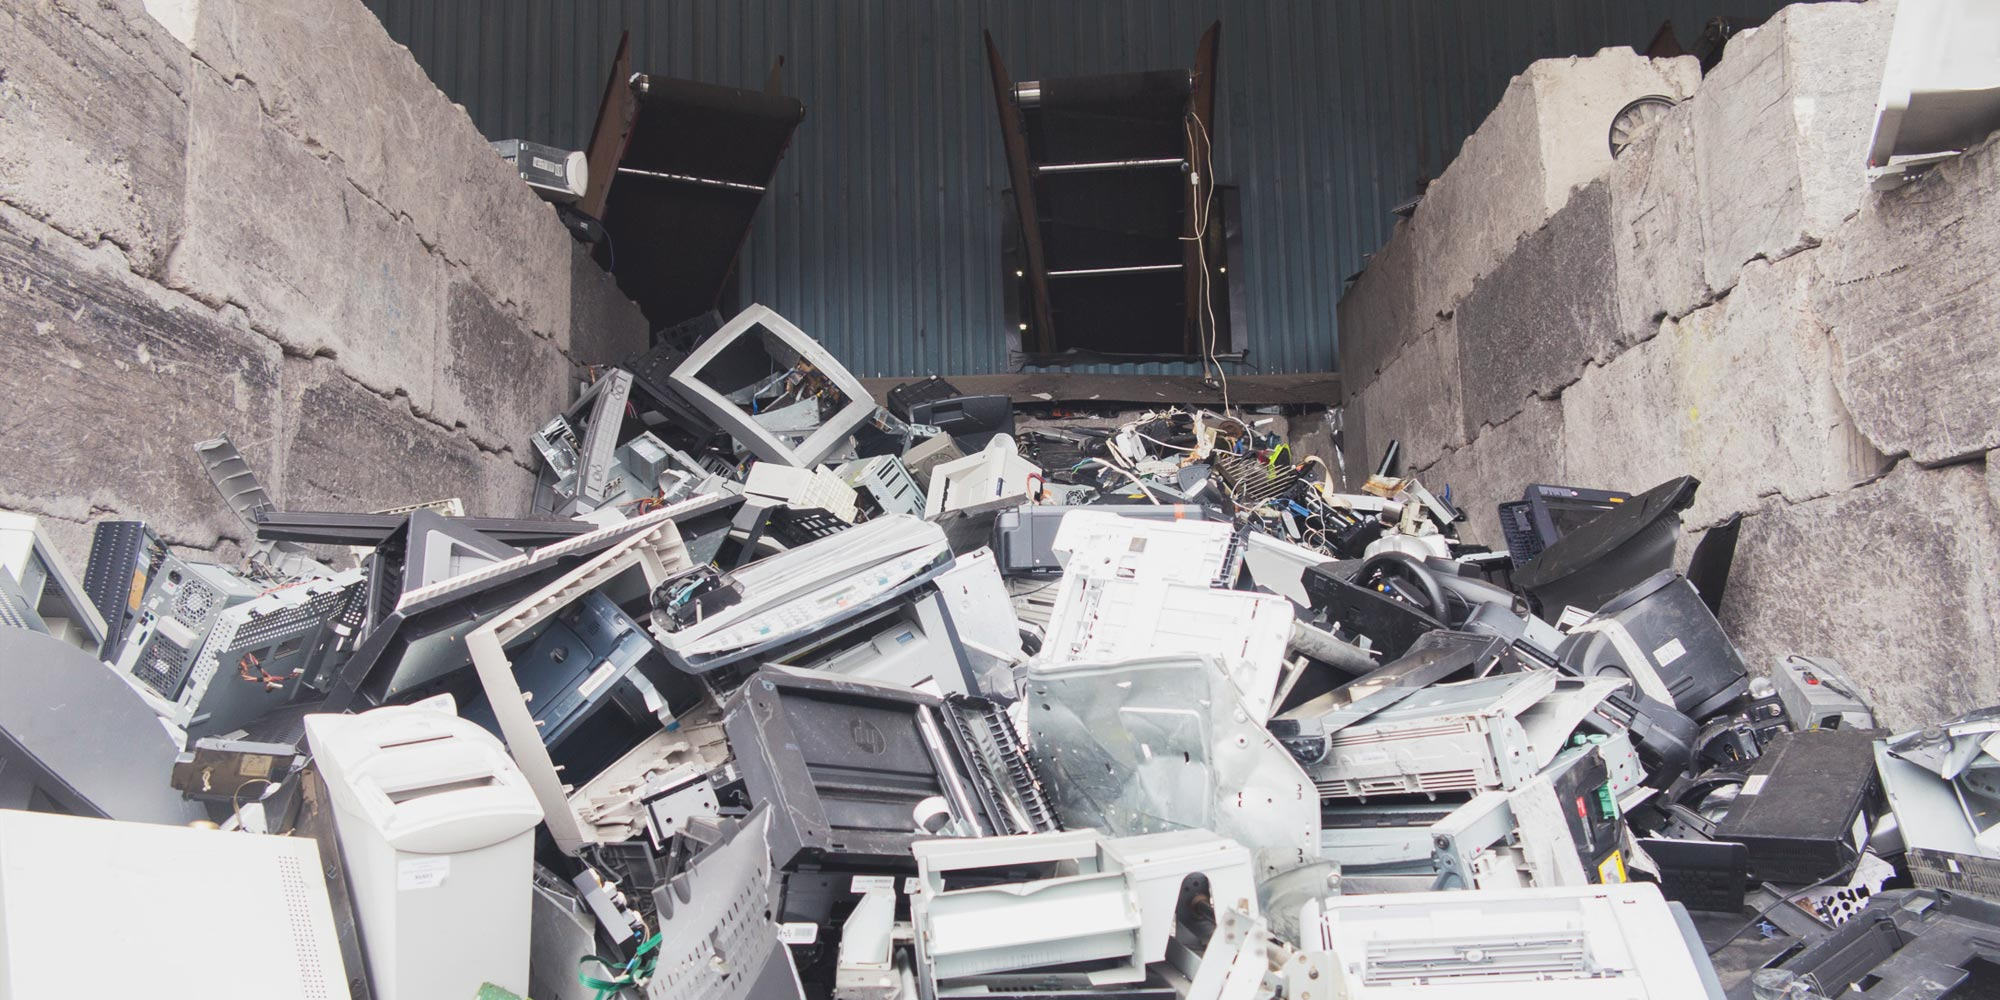 Global E-waste reaches record high, says new UN Report